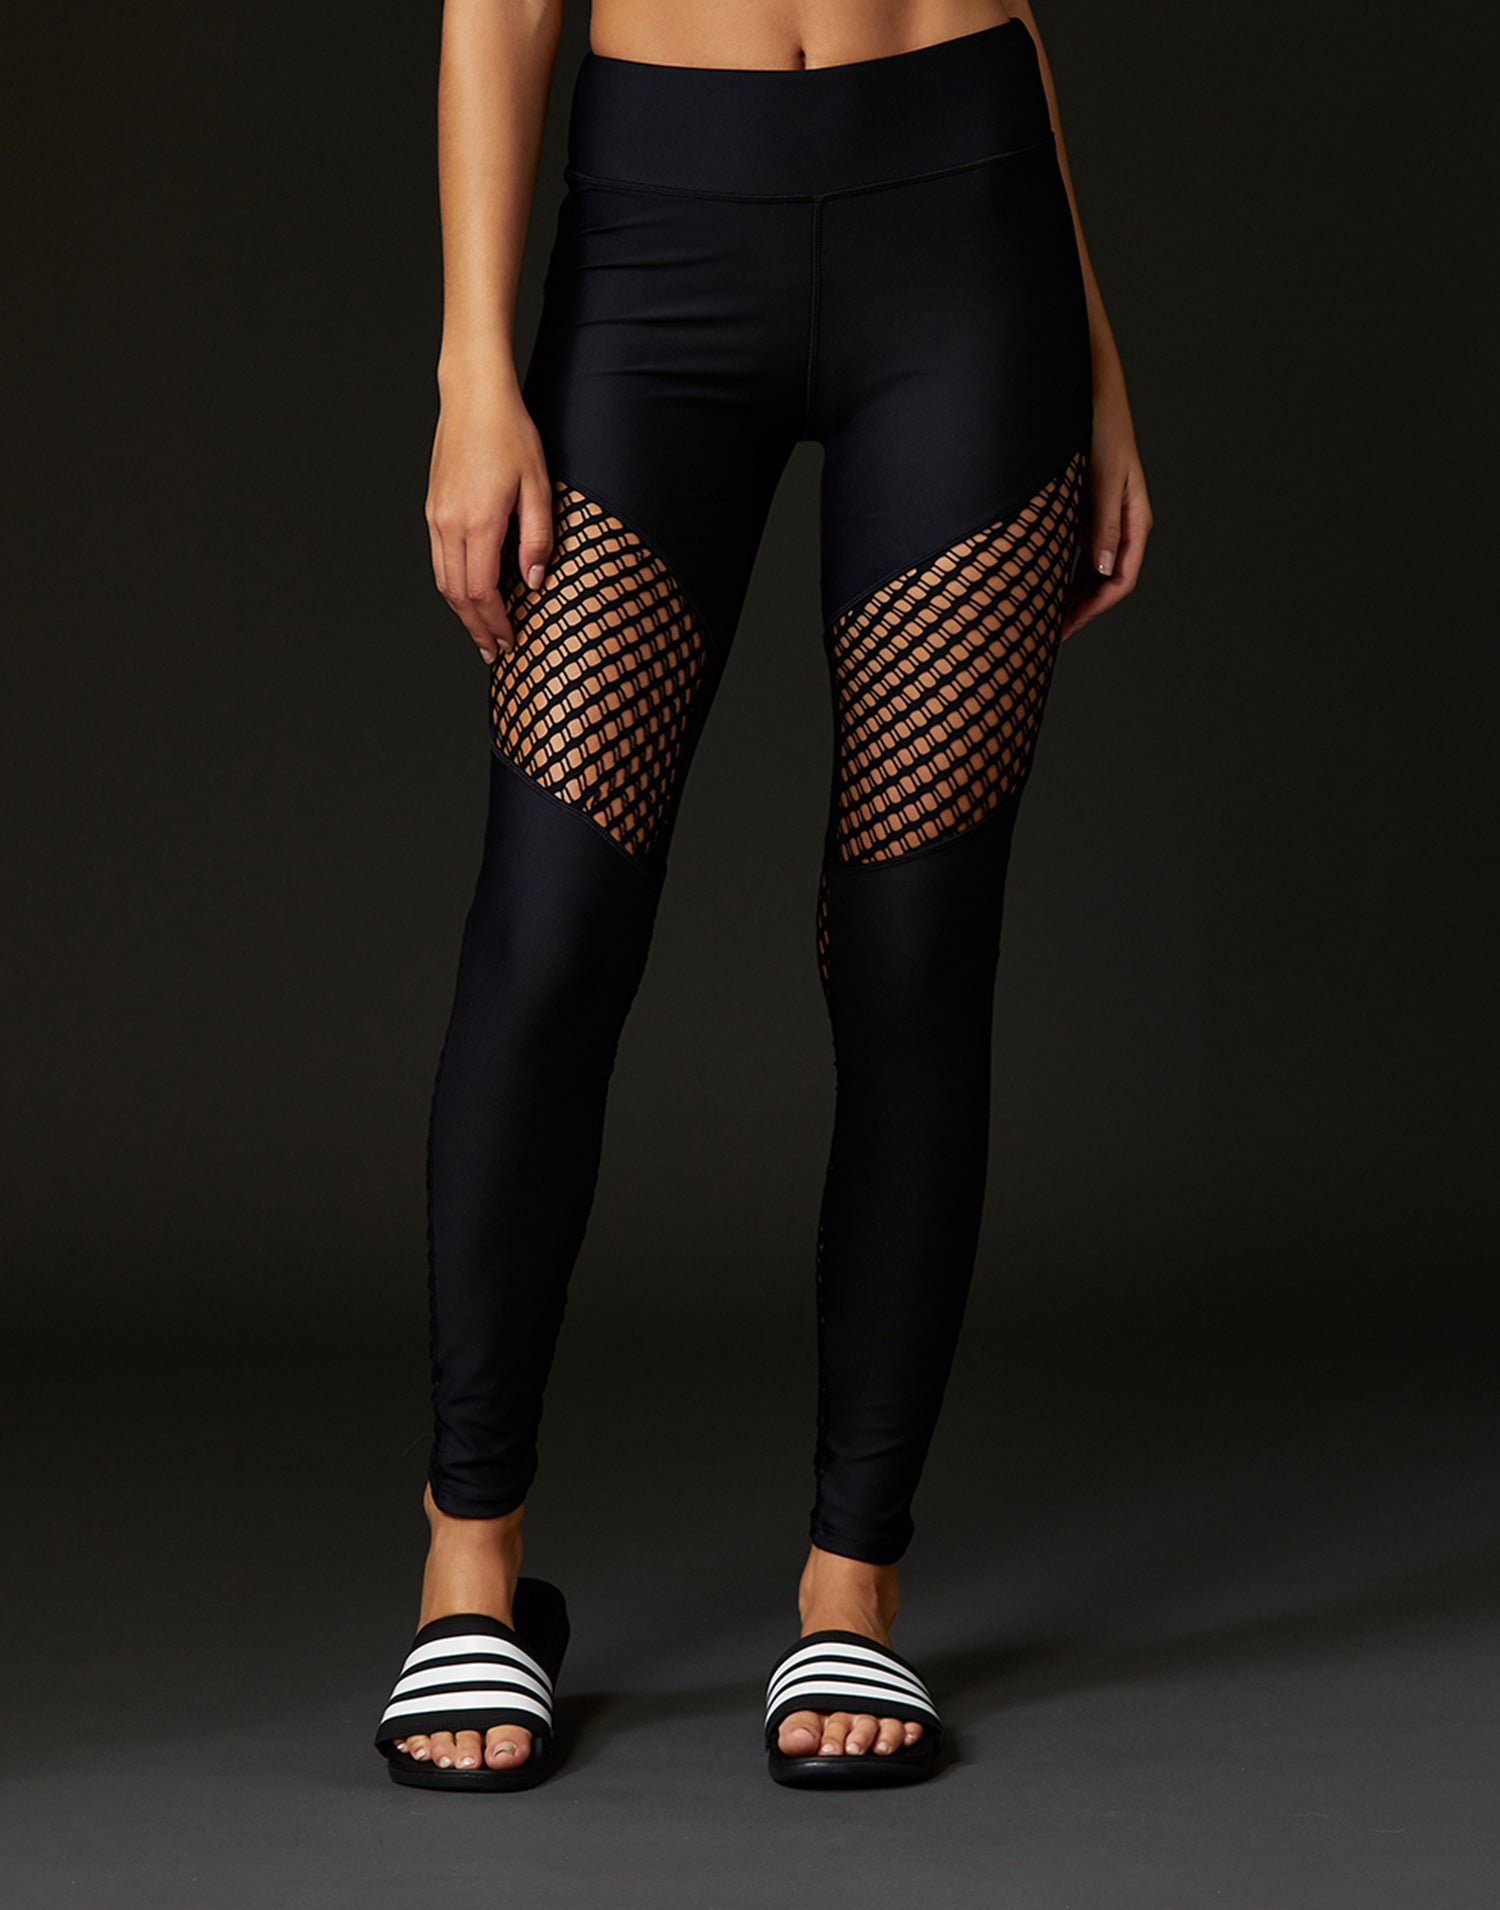 Child Ryder Legging with Sheer Wide Net Inserts in Black - front view